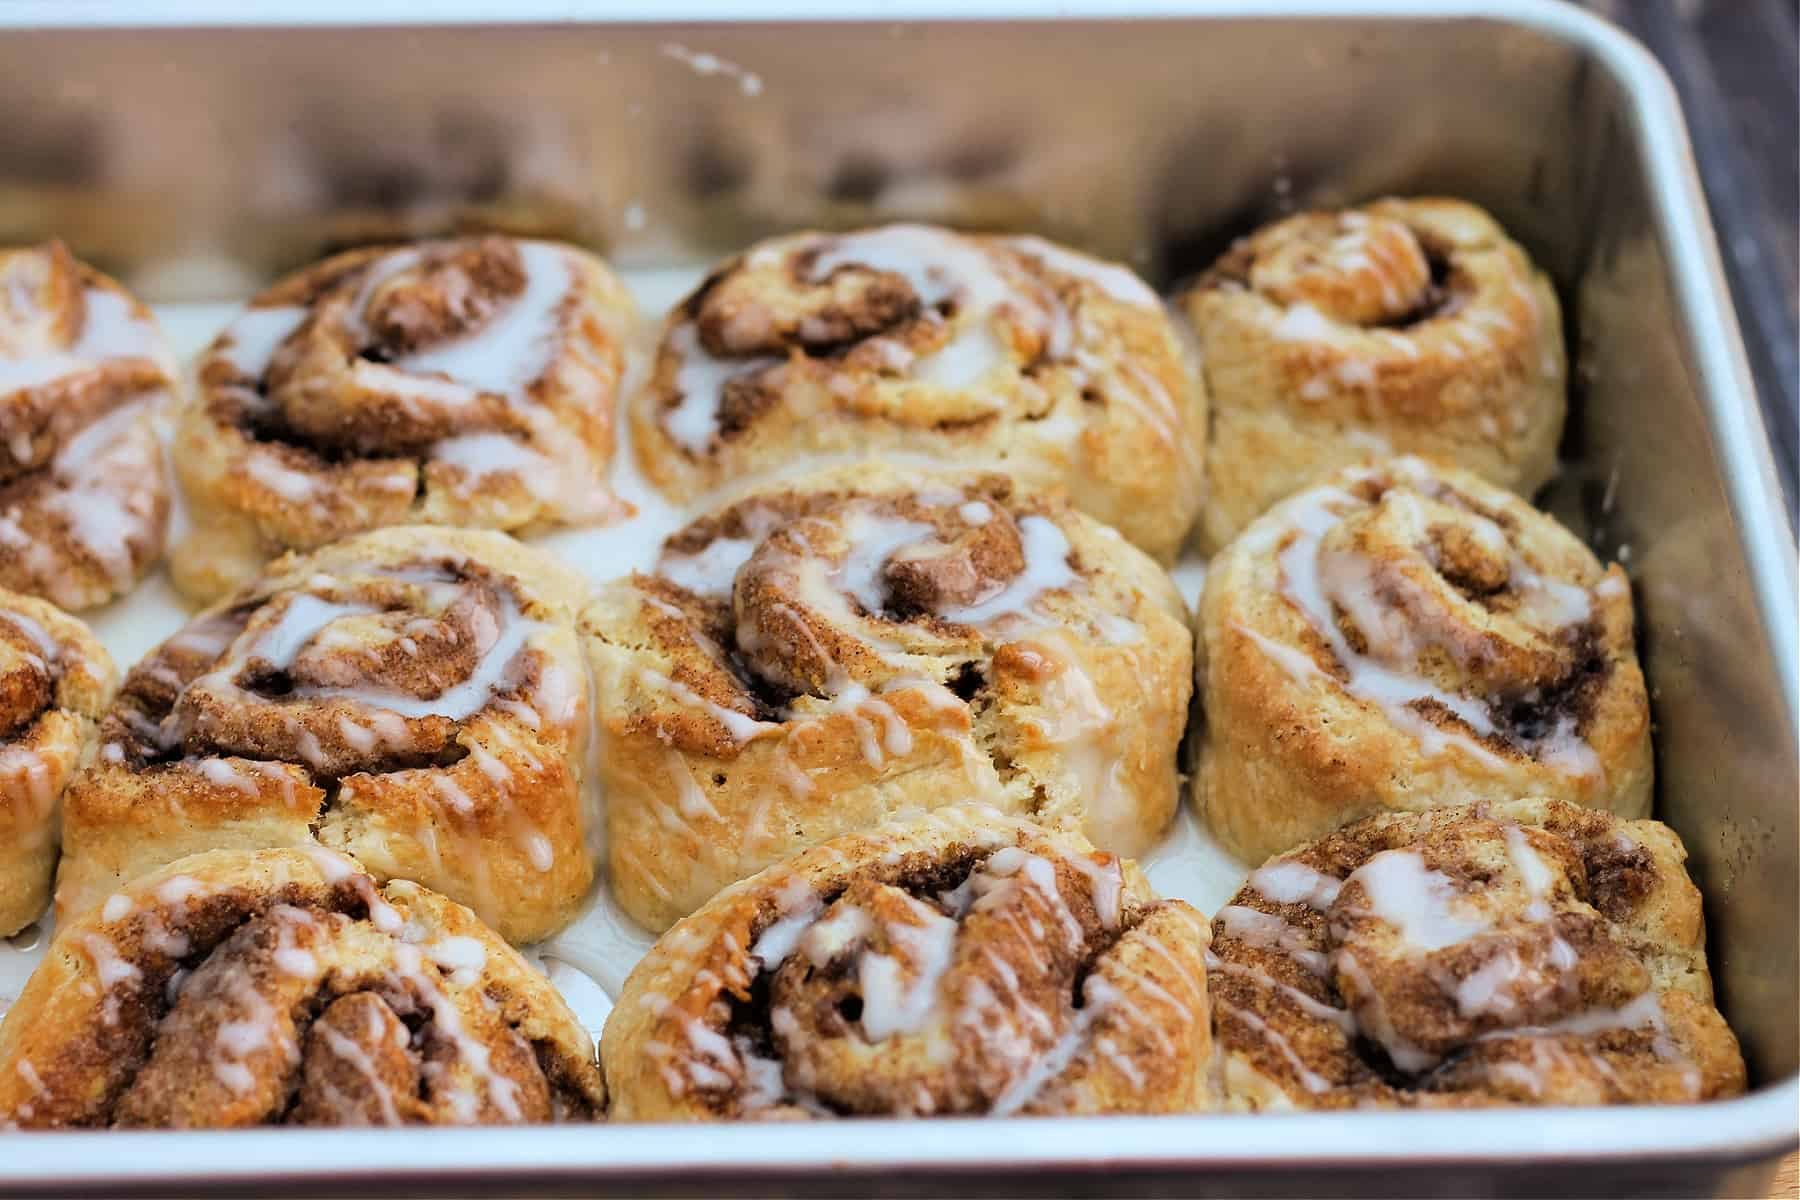 Cinnamon rolls with icing in baking tin.